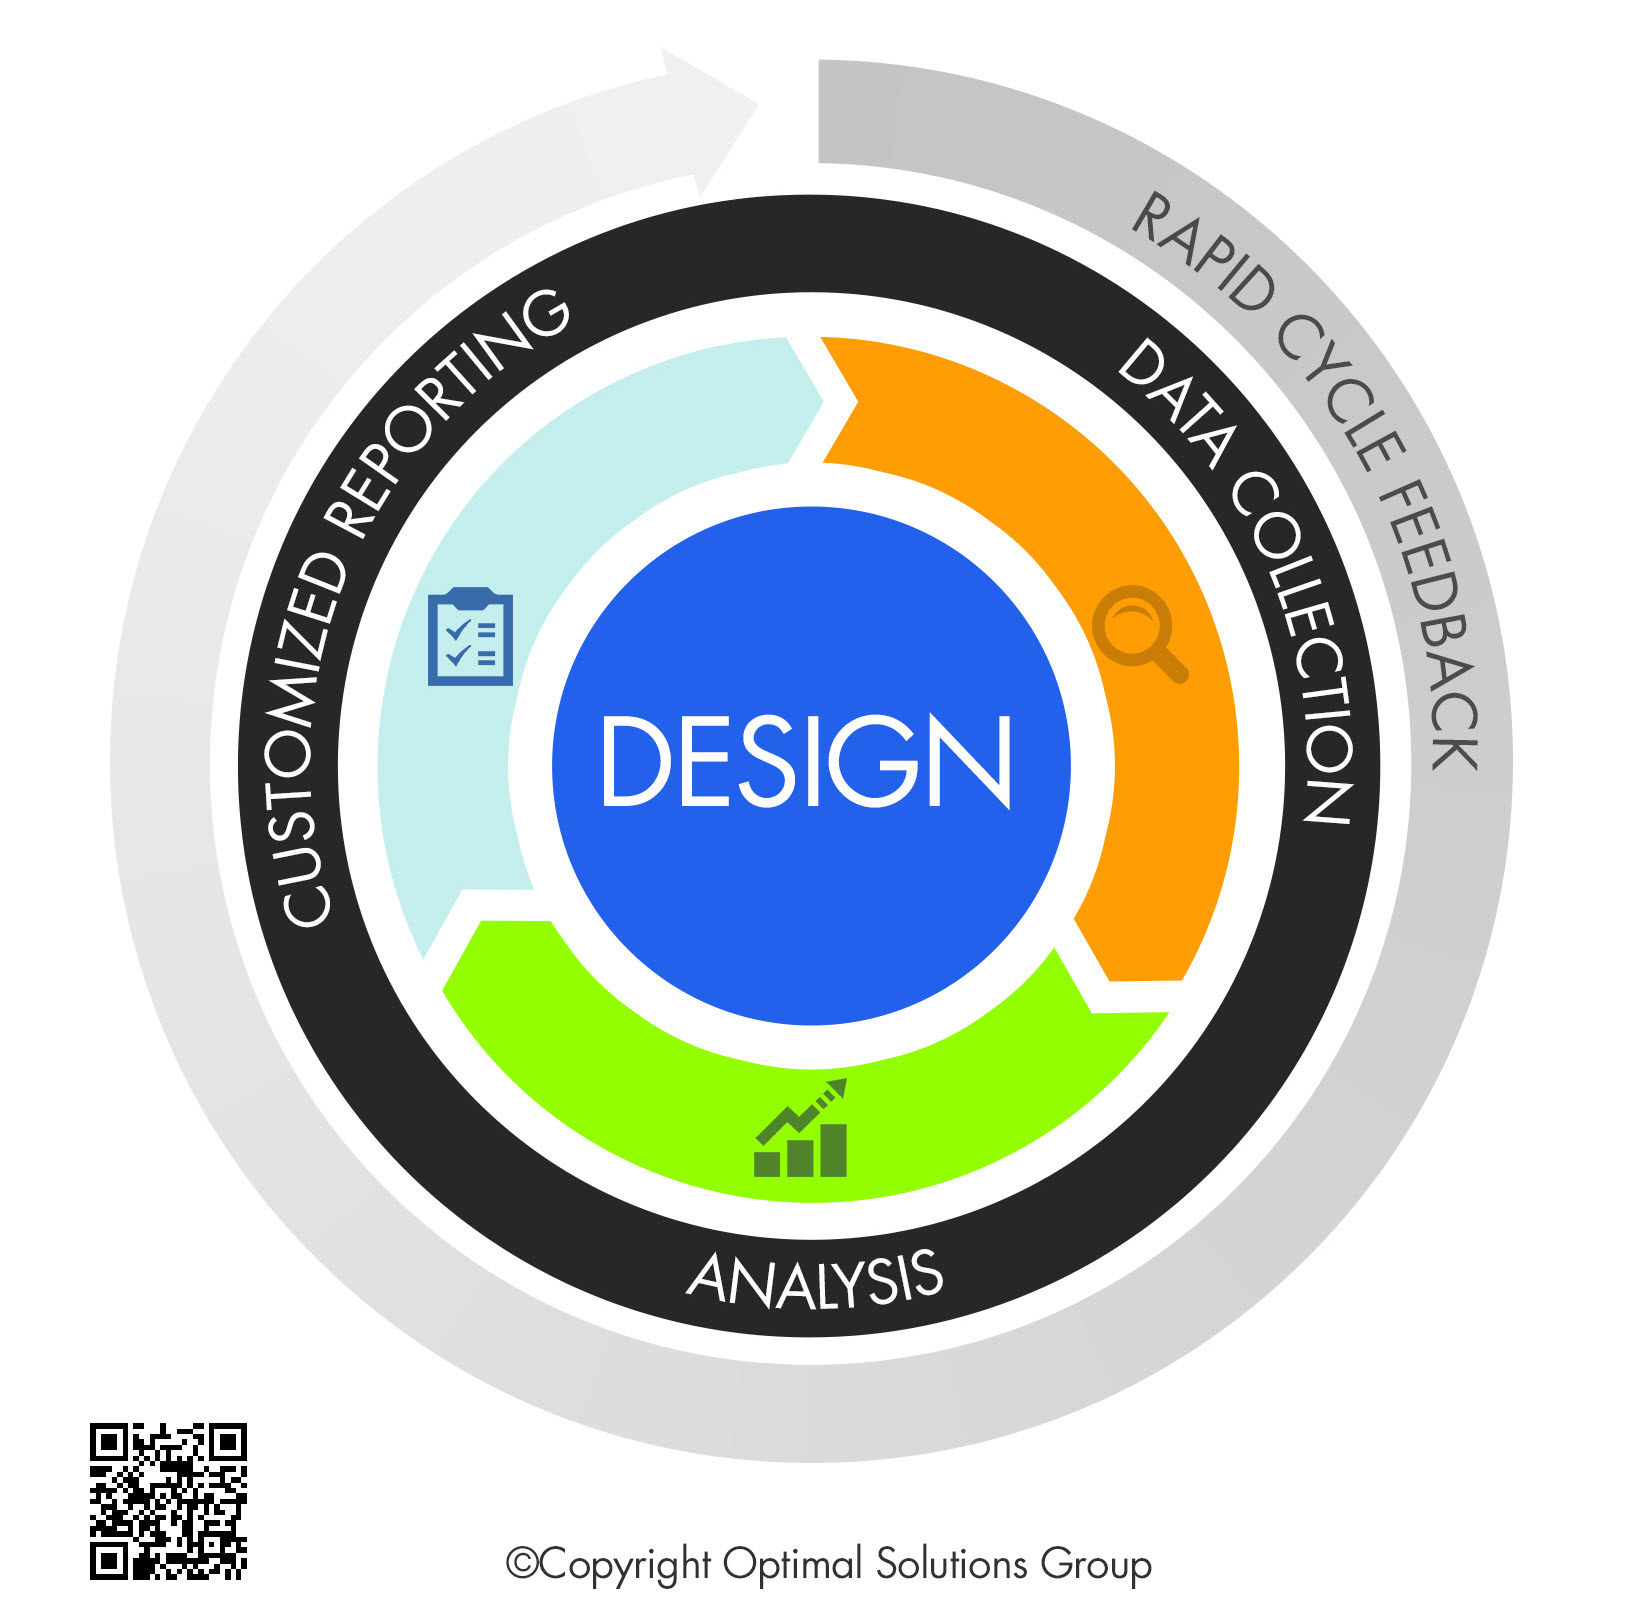 Real time framework design which has four circles of Rapid Cycle Feedback, Customized Reporting, Data collection, Analysis and Design